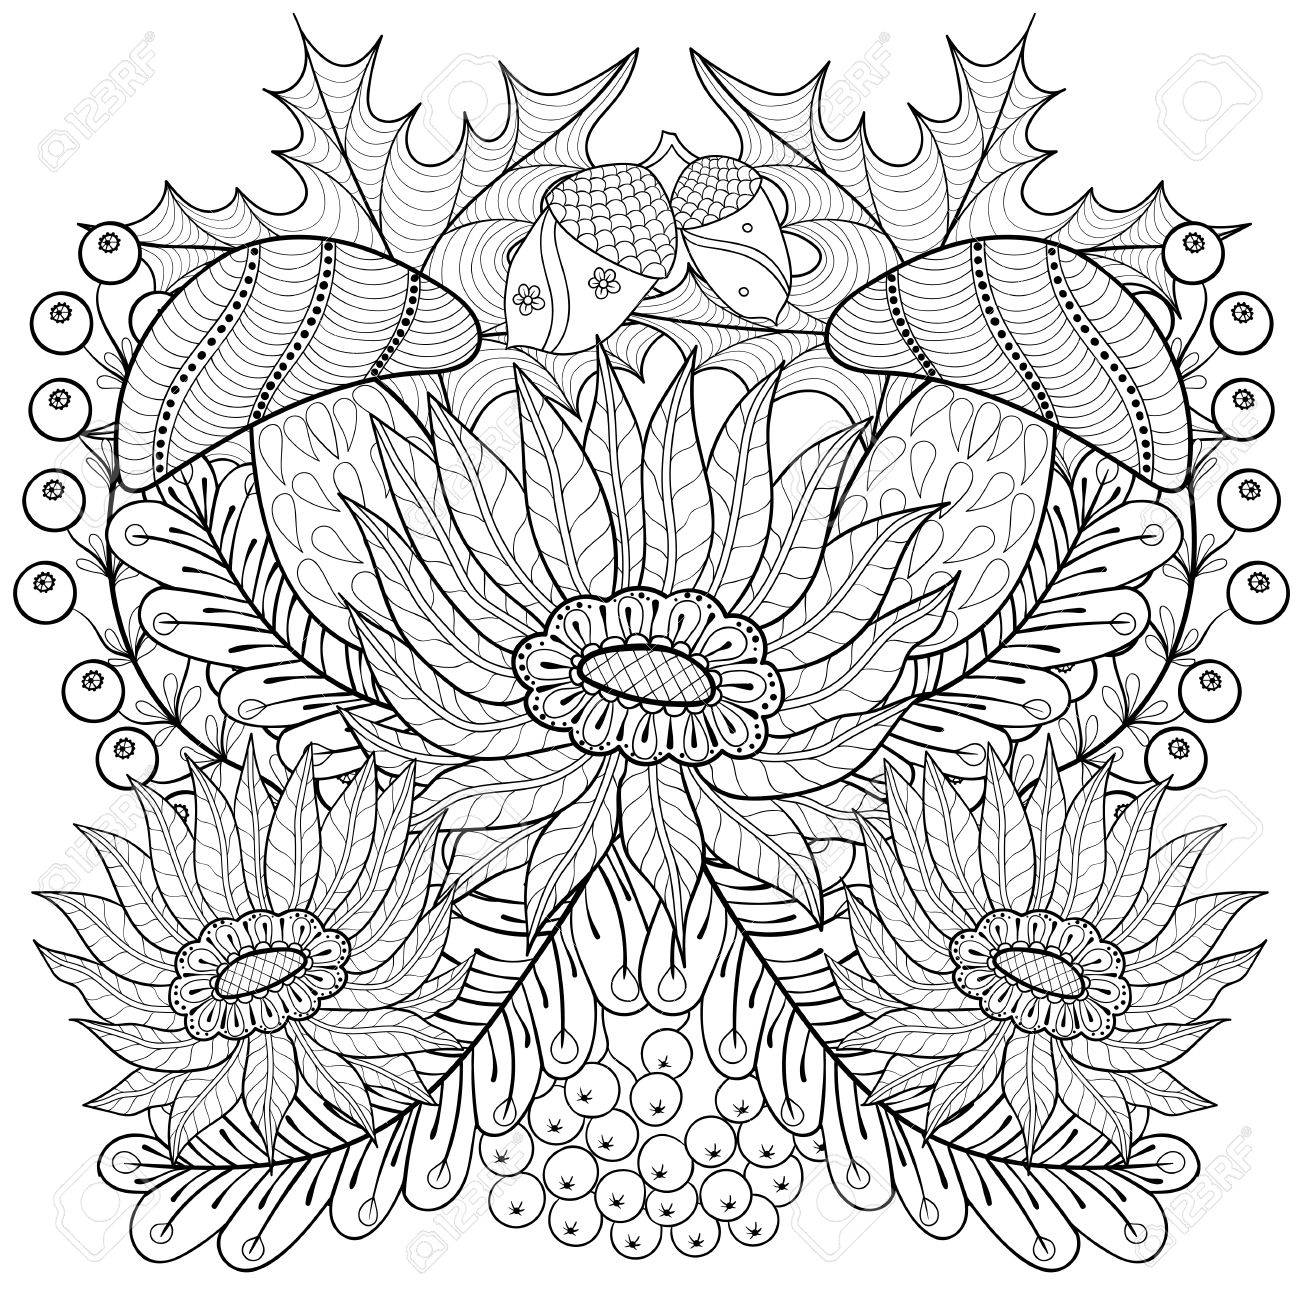 Free Printable Sunflower Coloring Pages Check more at http ... | 1300x1300